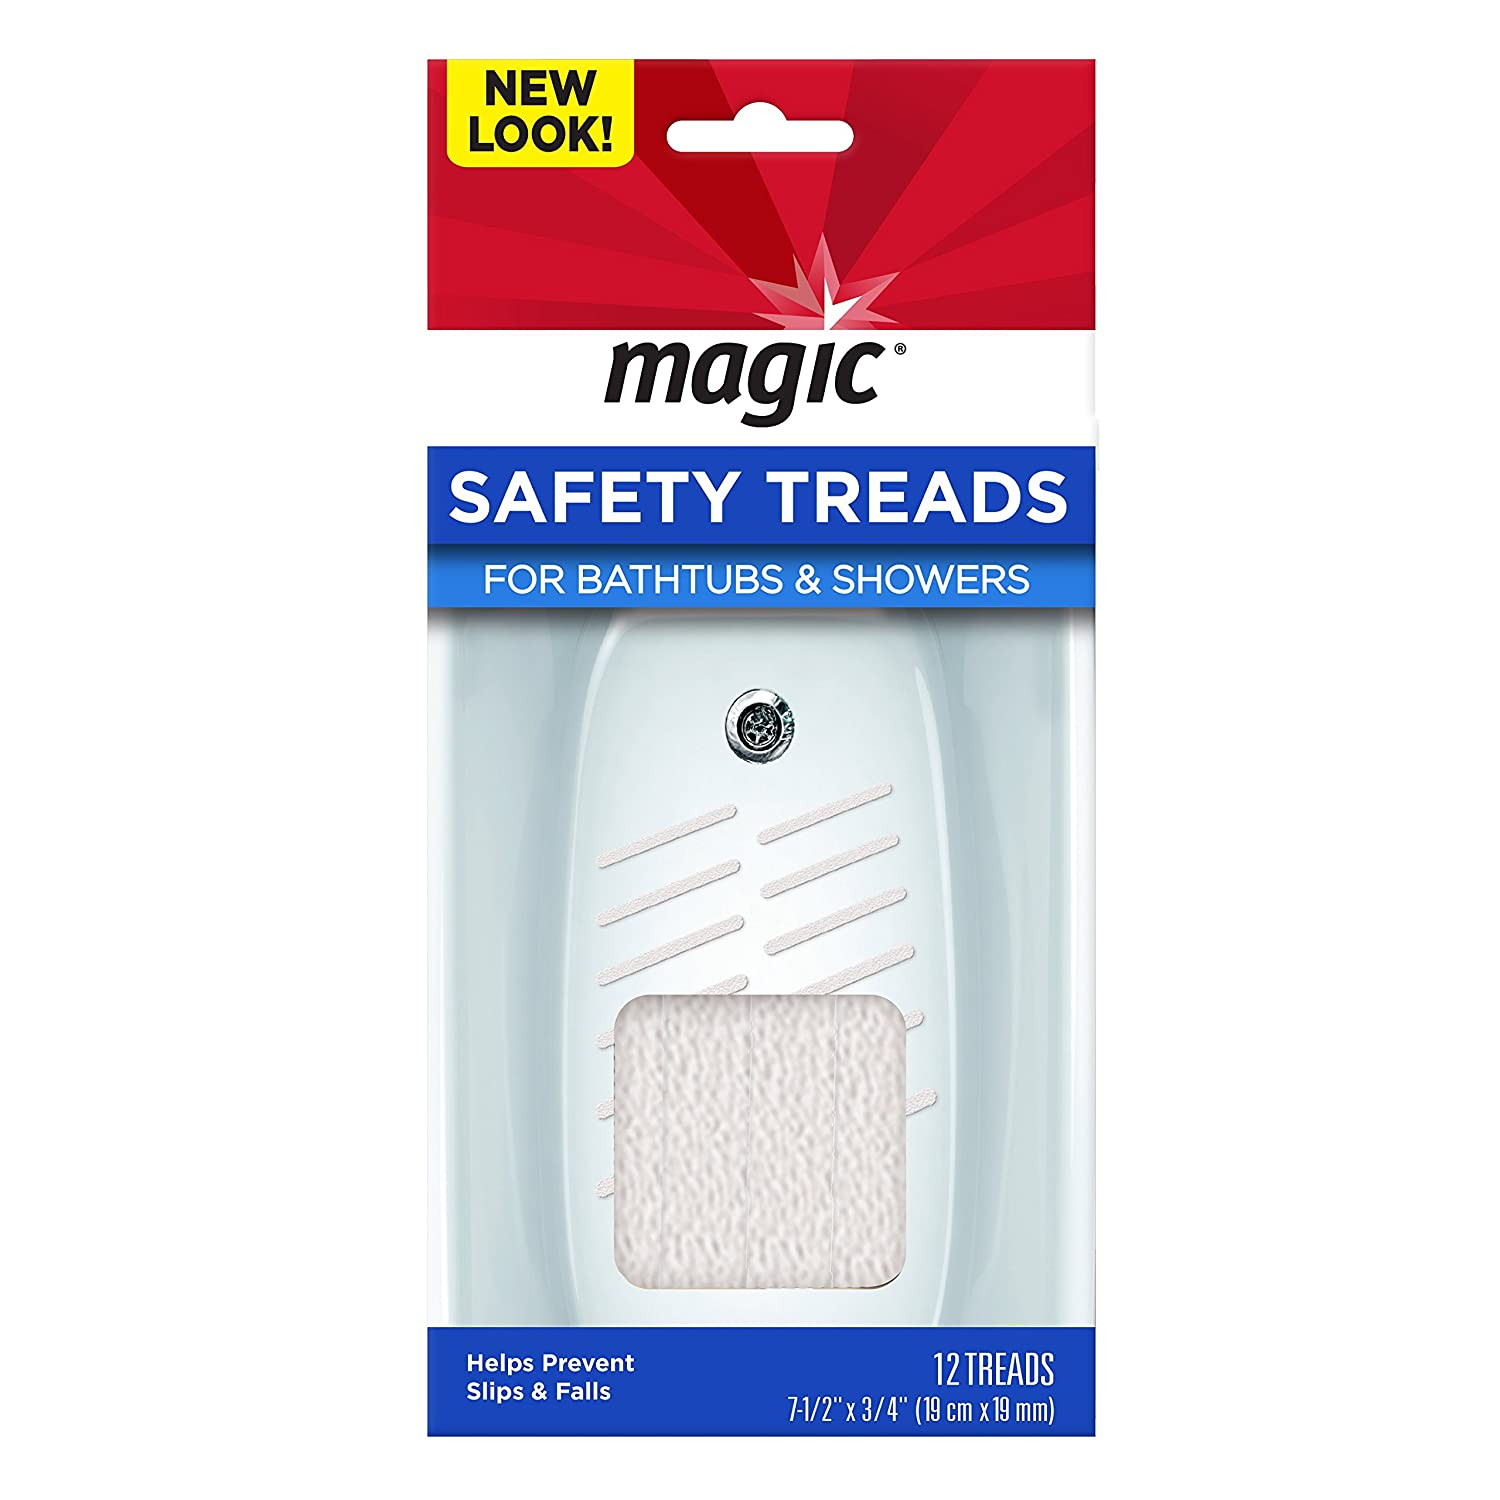 Magic Shower/Bathtub Safety Treads - Helps Prevent Slips and Falls - 12 Treads Weiman 3008